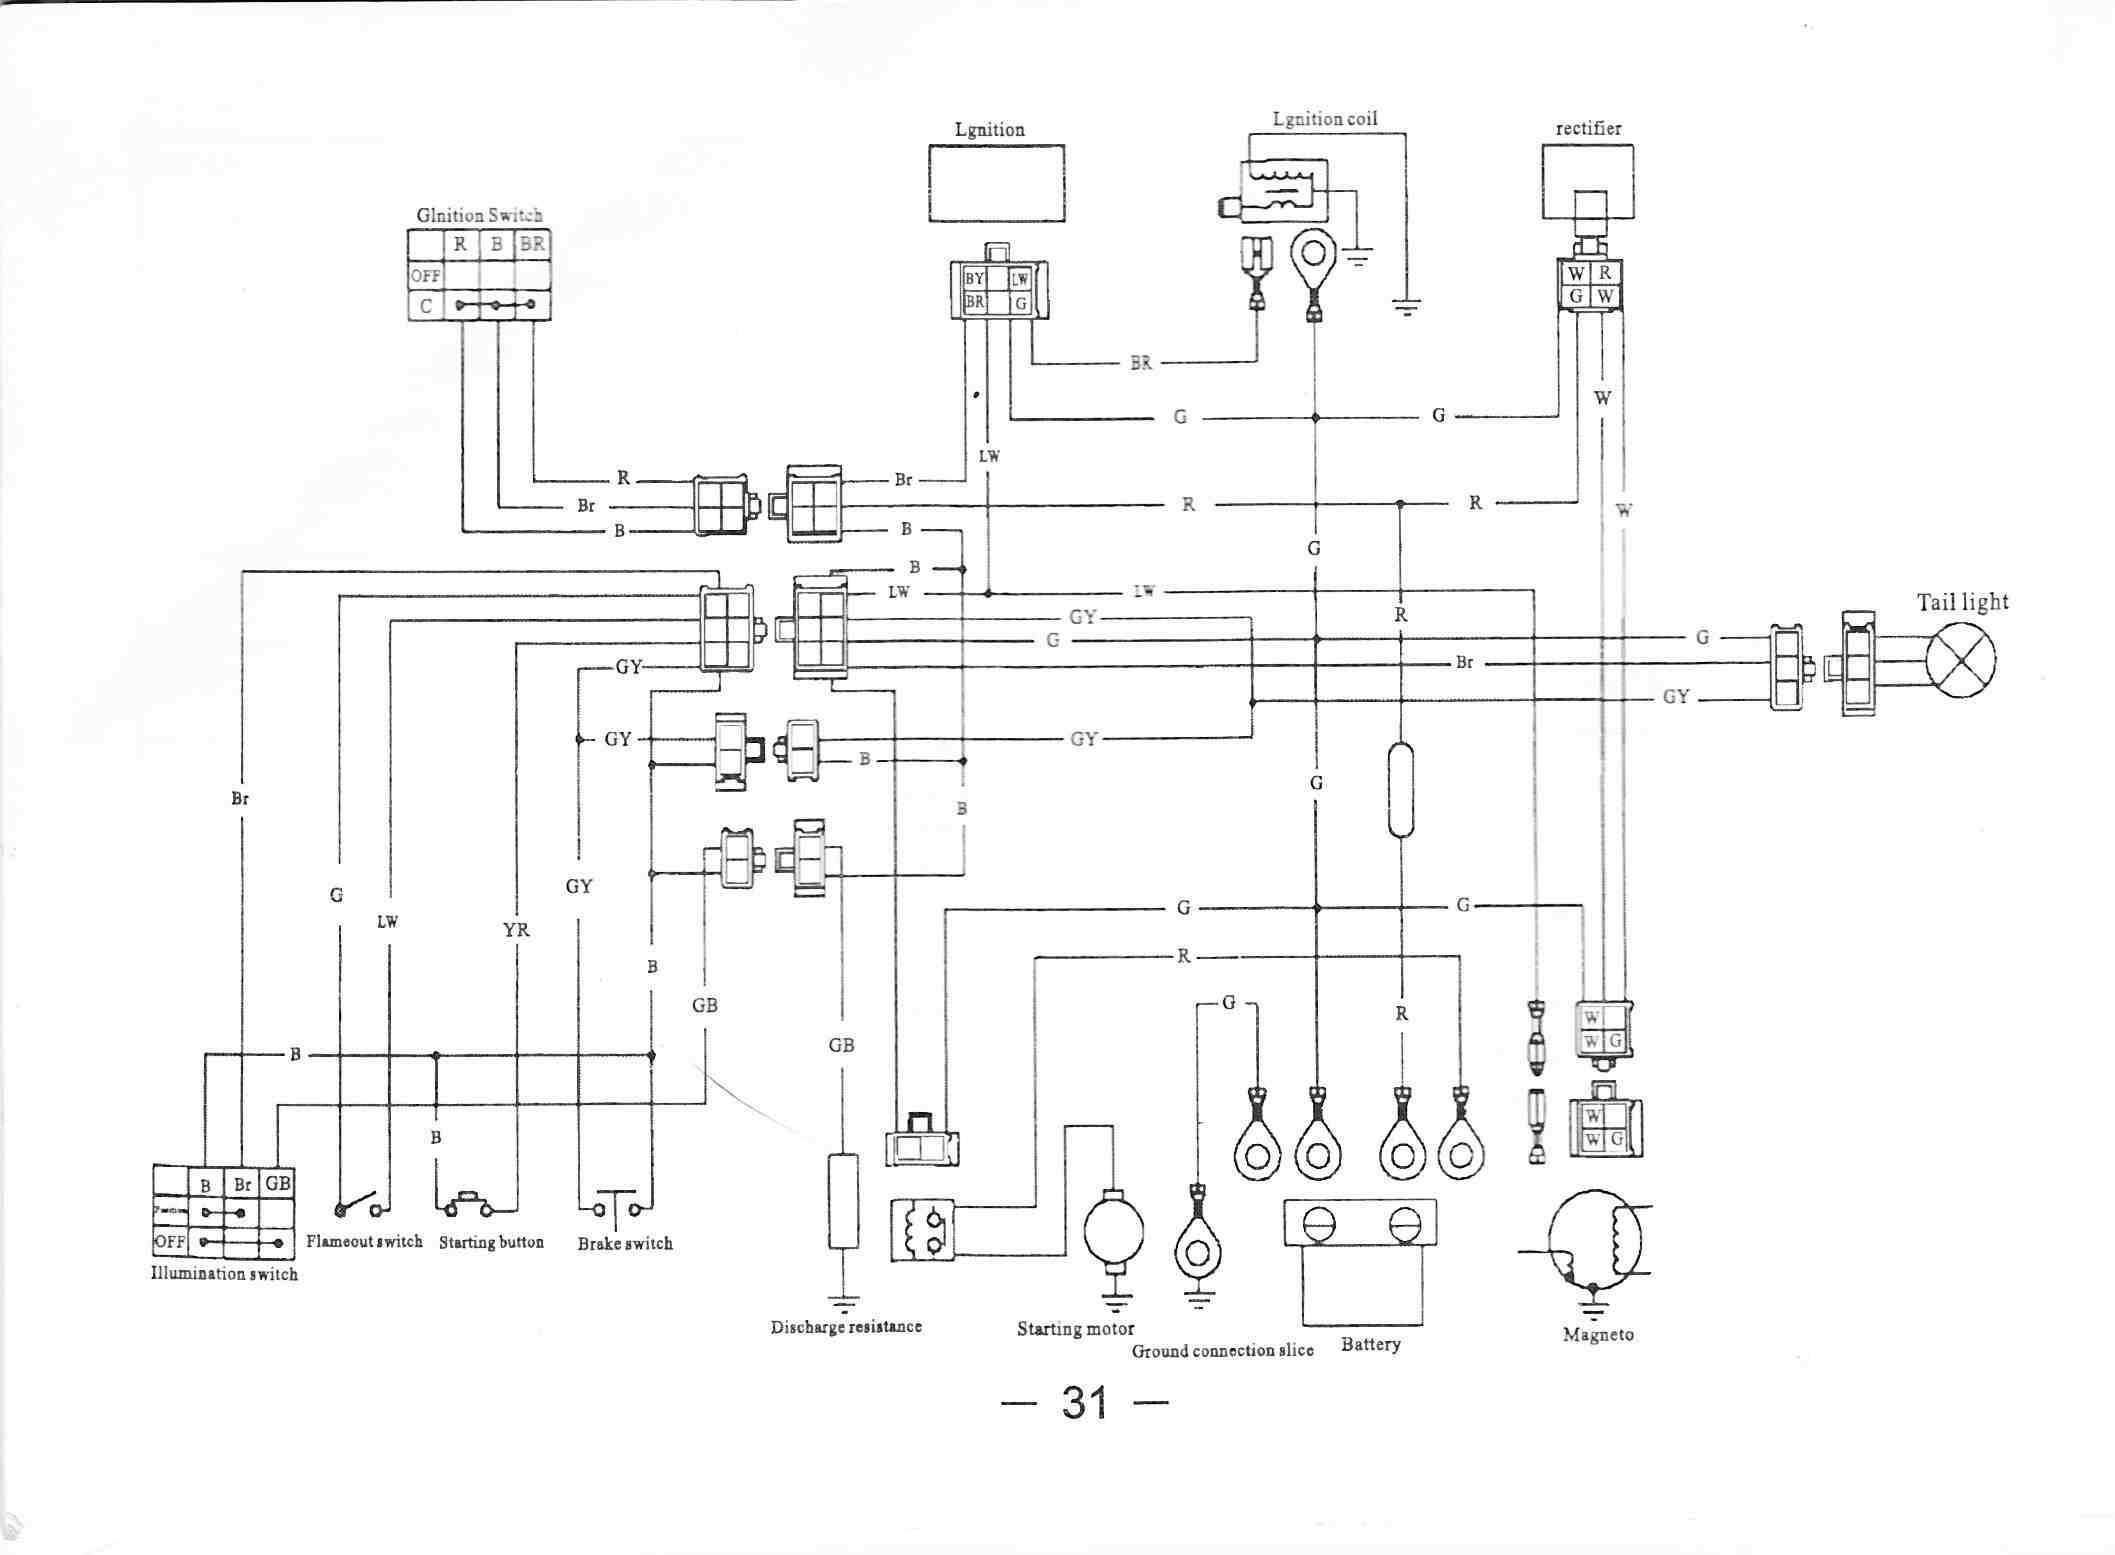 atv cdi diagram library of wiring diagram u2022 rh jessascott co